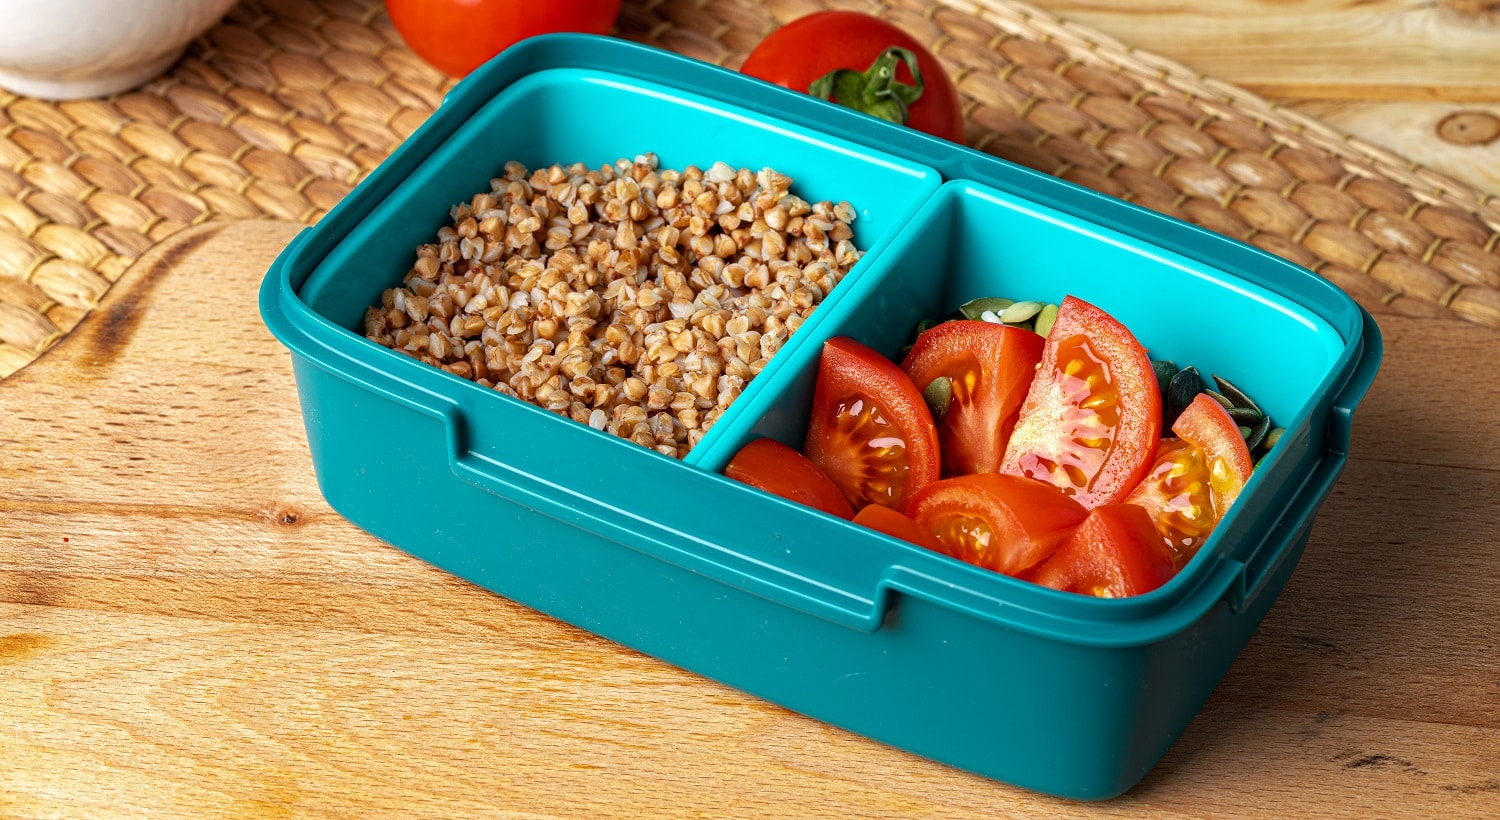 Blue lunch box with buckwheat and tomatoes, healthy eating